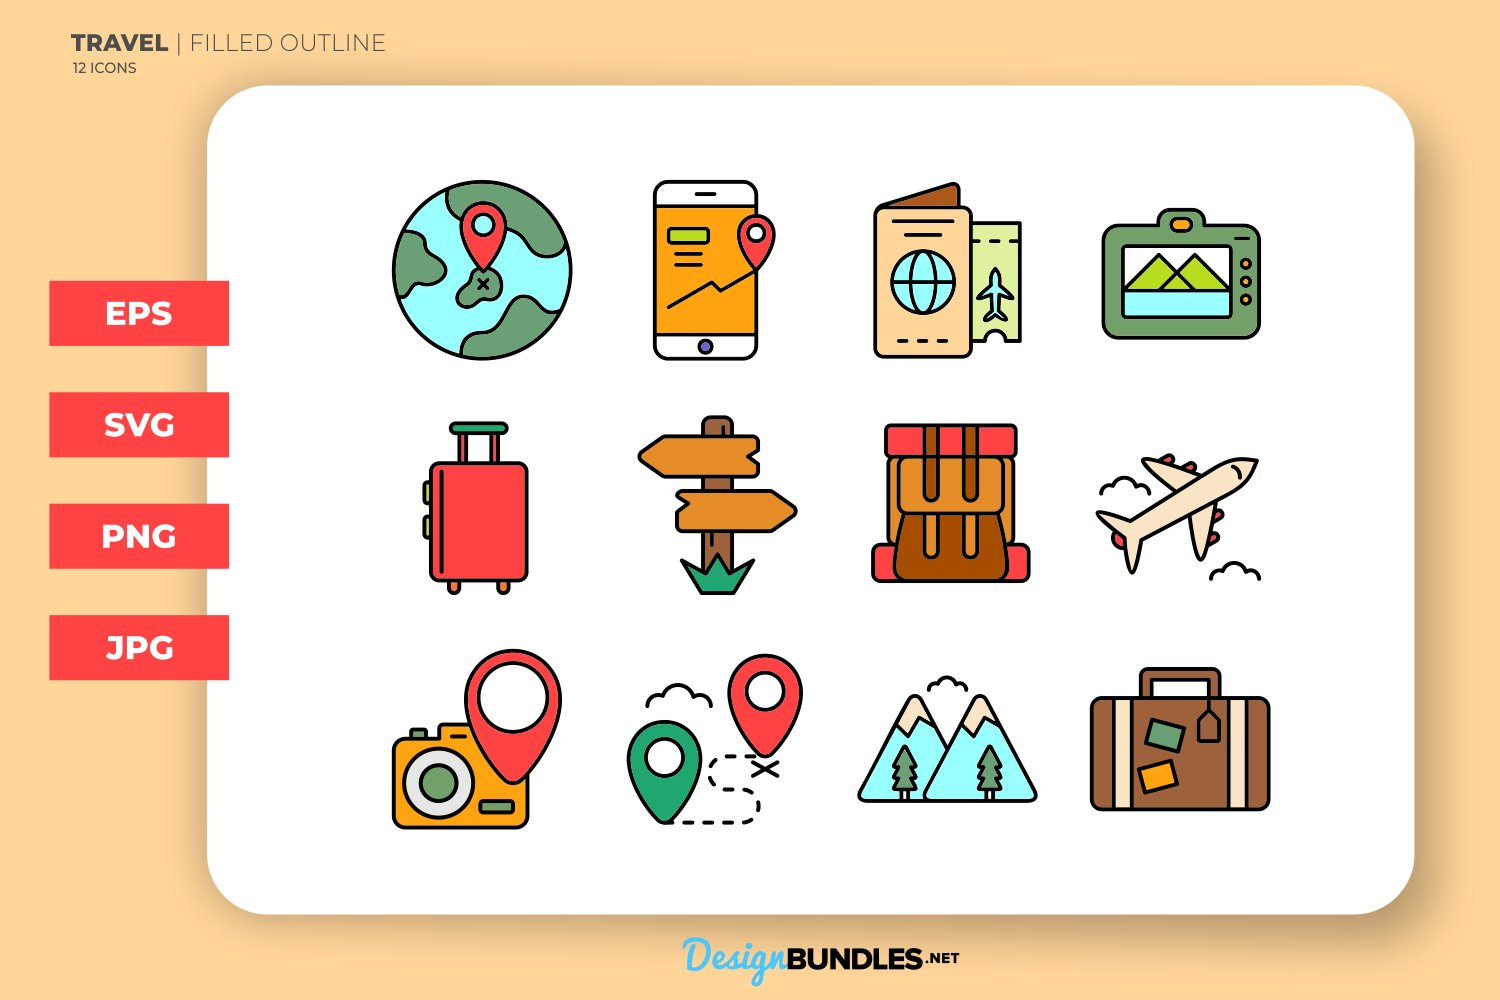 Travel Filled Outline Icons example image 1